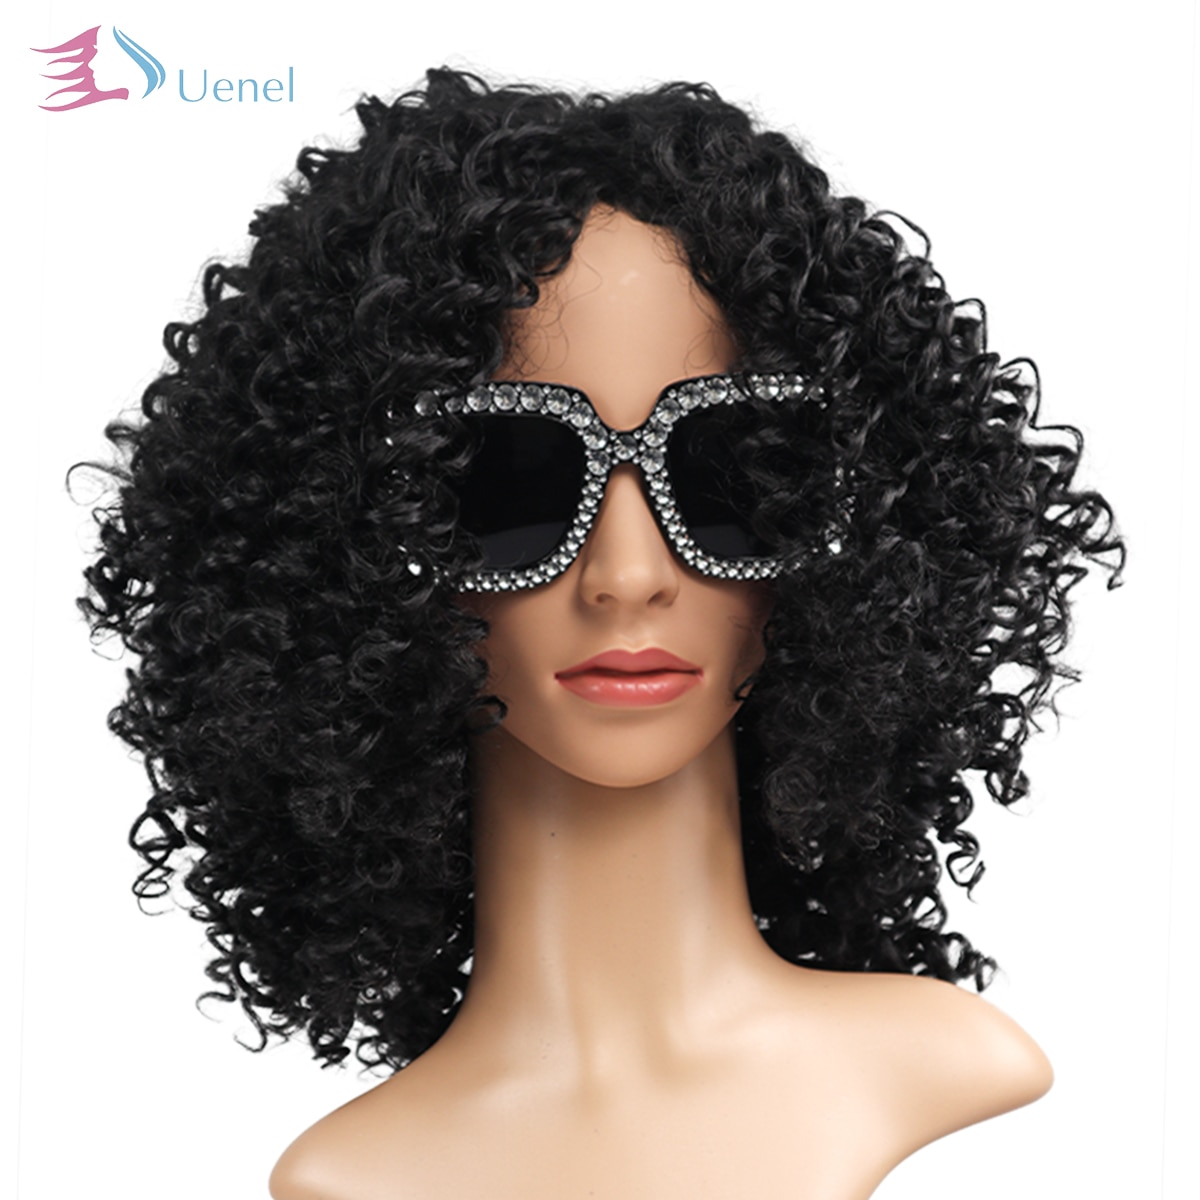 UENELl Good Quality Fashion Medium Black Bouncy Curly Afro Women Synthetic Wigs High Temperature Fiber 18Inch Free Shipping